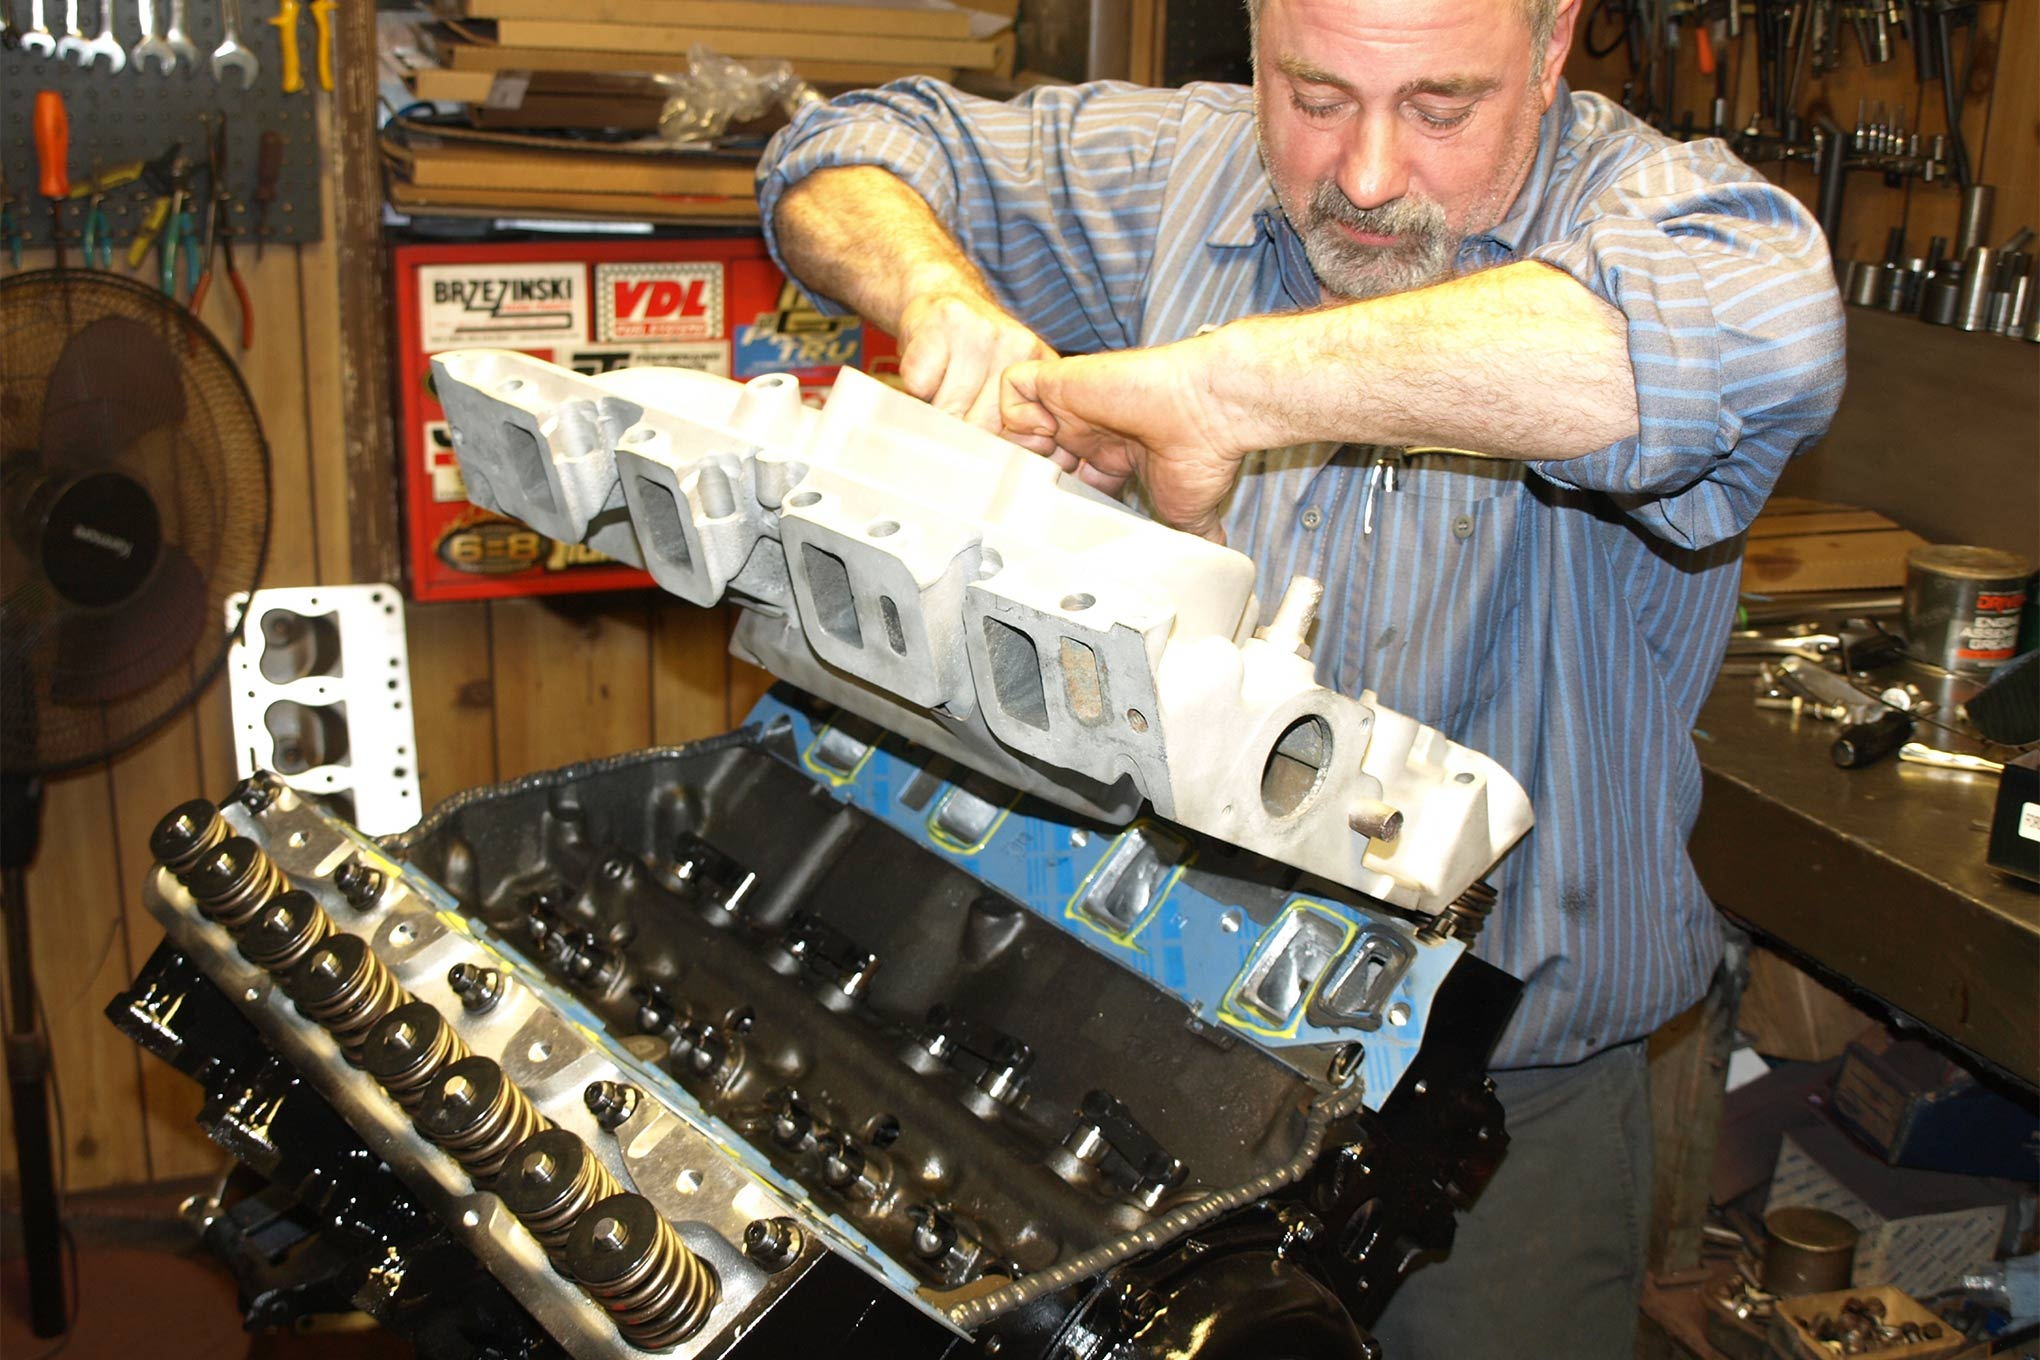 Though dual-quads are slated for installation at a later date, for now a vintage Ford C7AE9425-F 427 single four-barrel intake manifold is used. A Quick Fuel Technology BDQ-850 carburetor with mechanical secondaries meters the fuel. Jetting is 76/84 (primary/secondary). Seasoned FE builders may notice the lack of the lifter valley tray. See the next picture for the reason why.